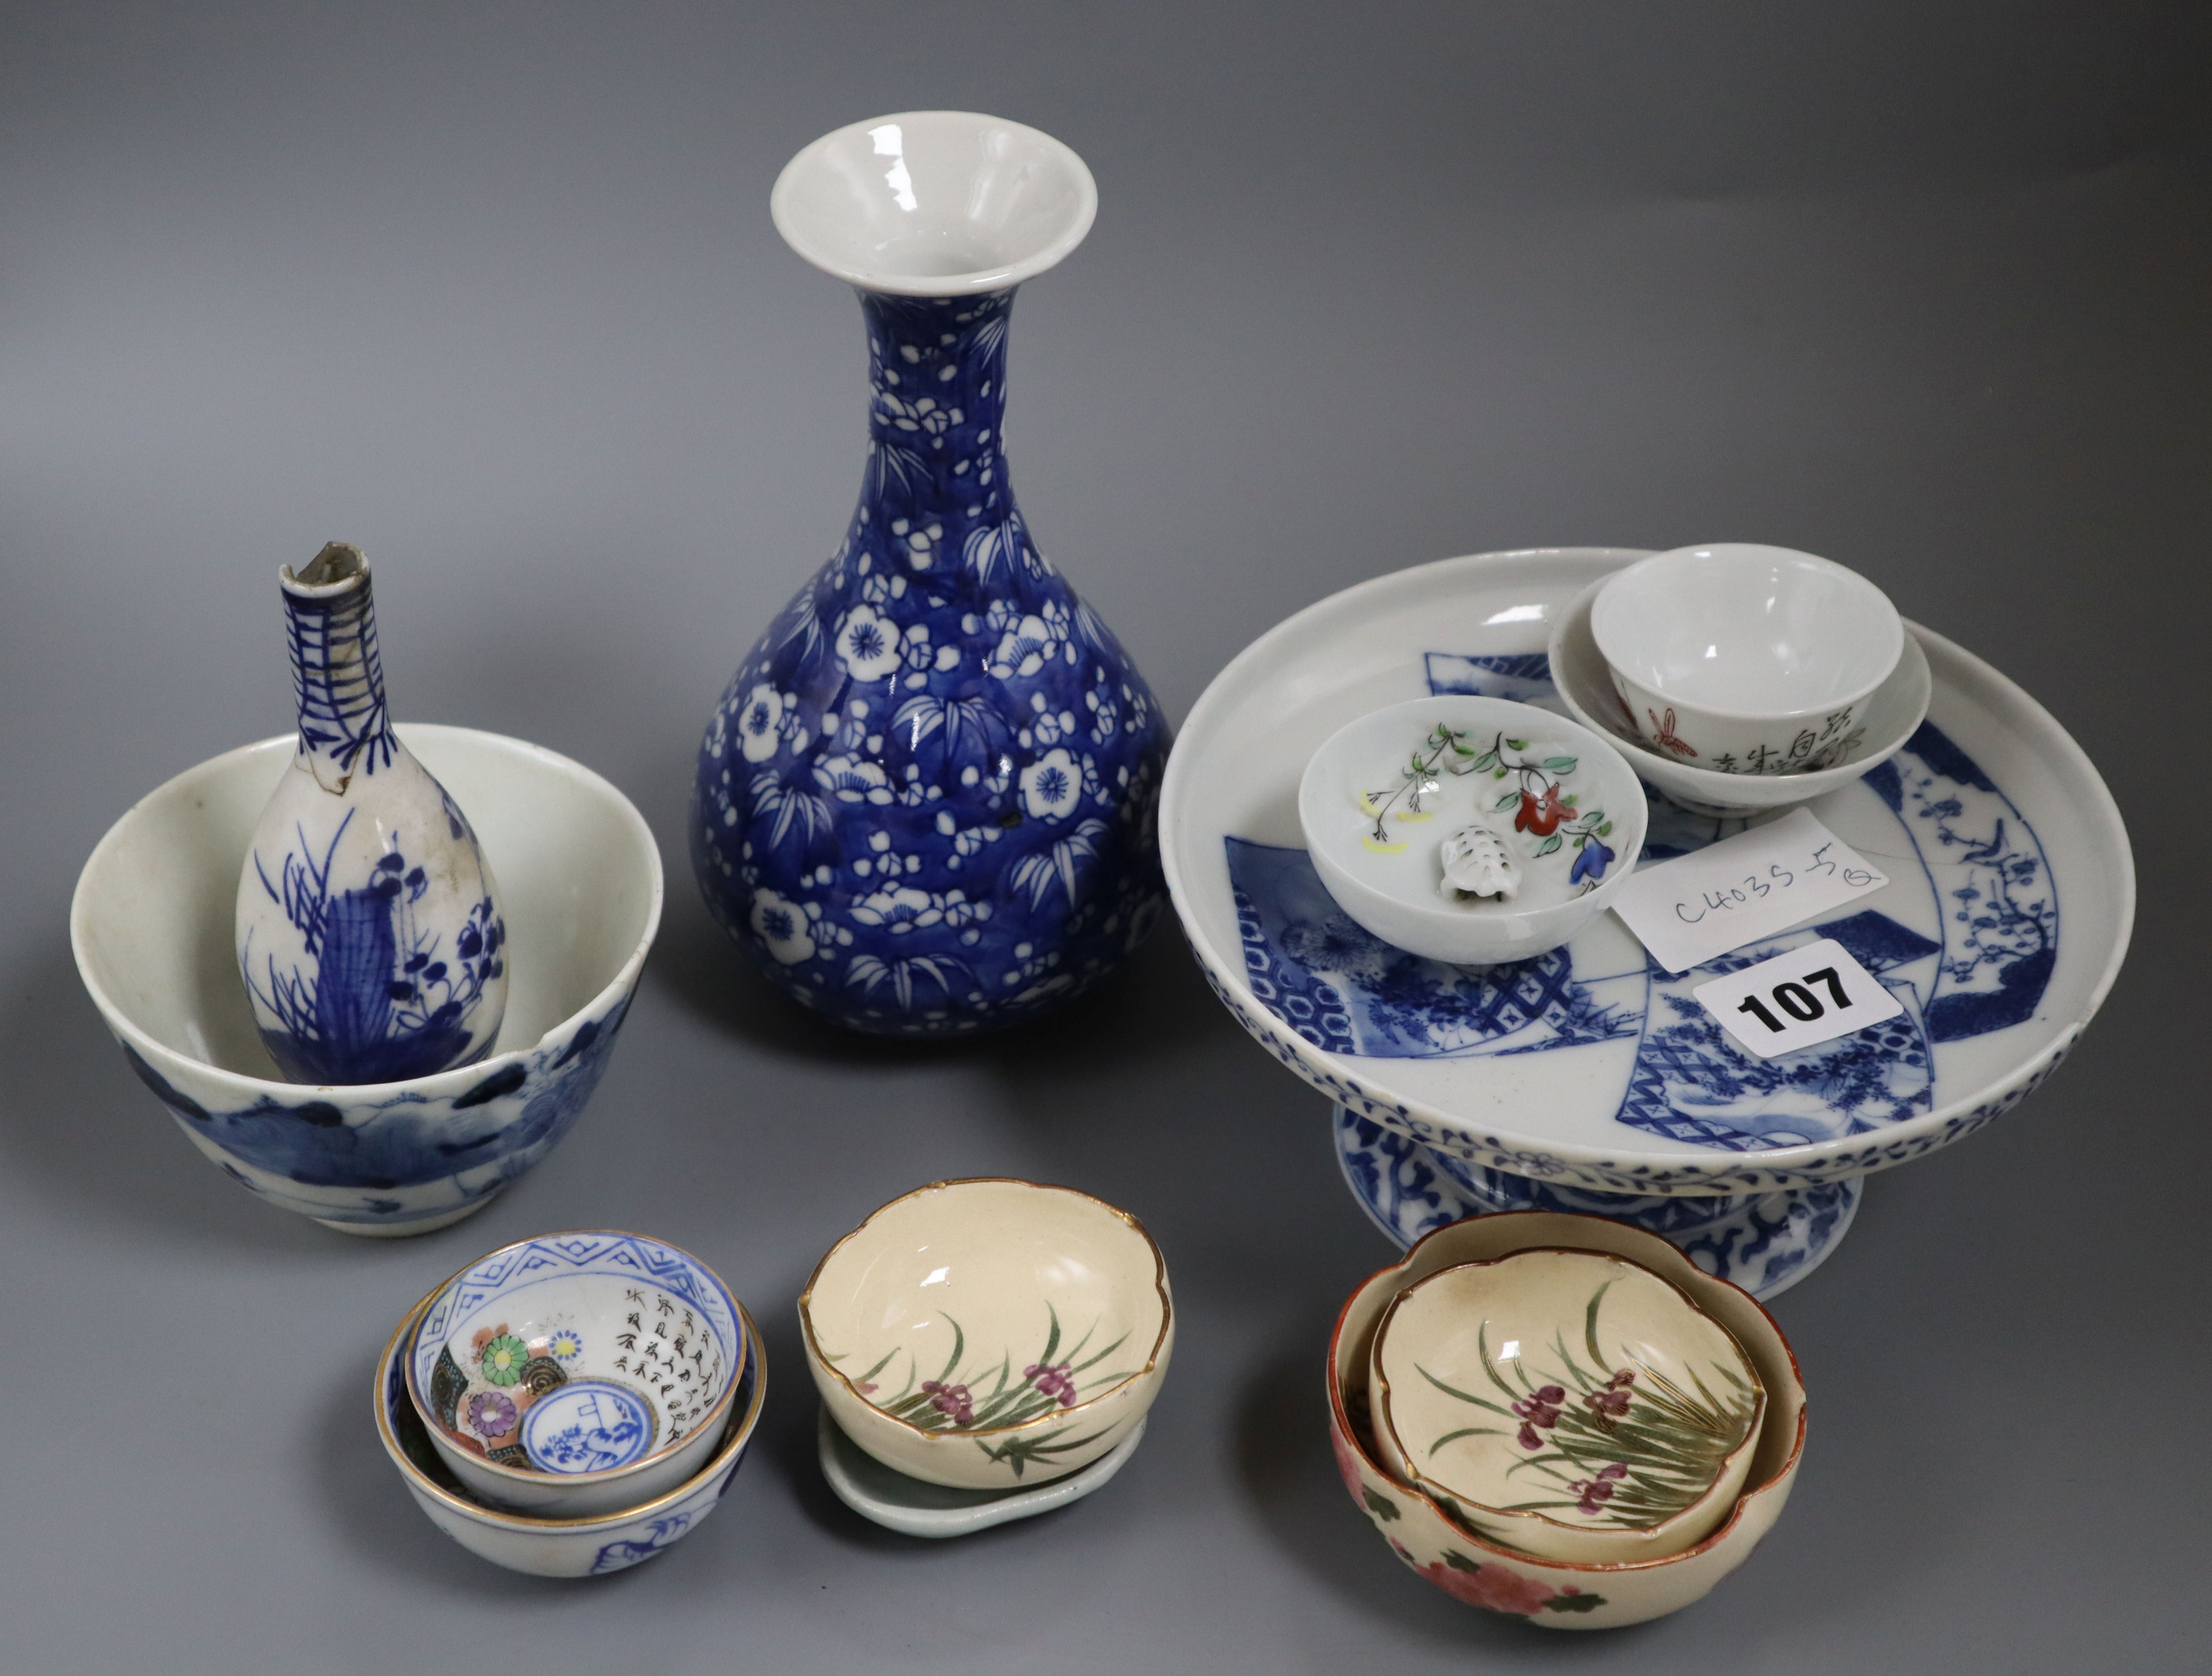 Lot 107 - A group of Chinese ceramics tallest 18cm